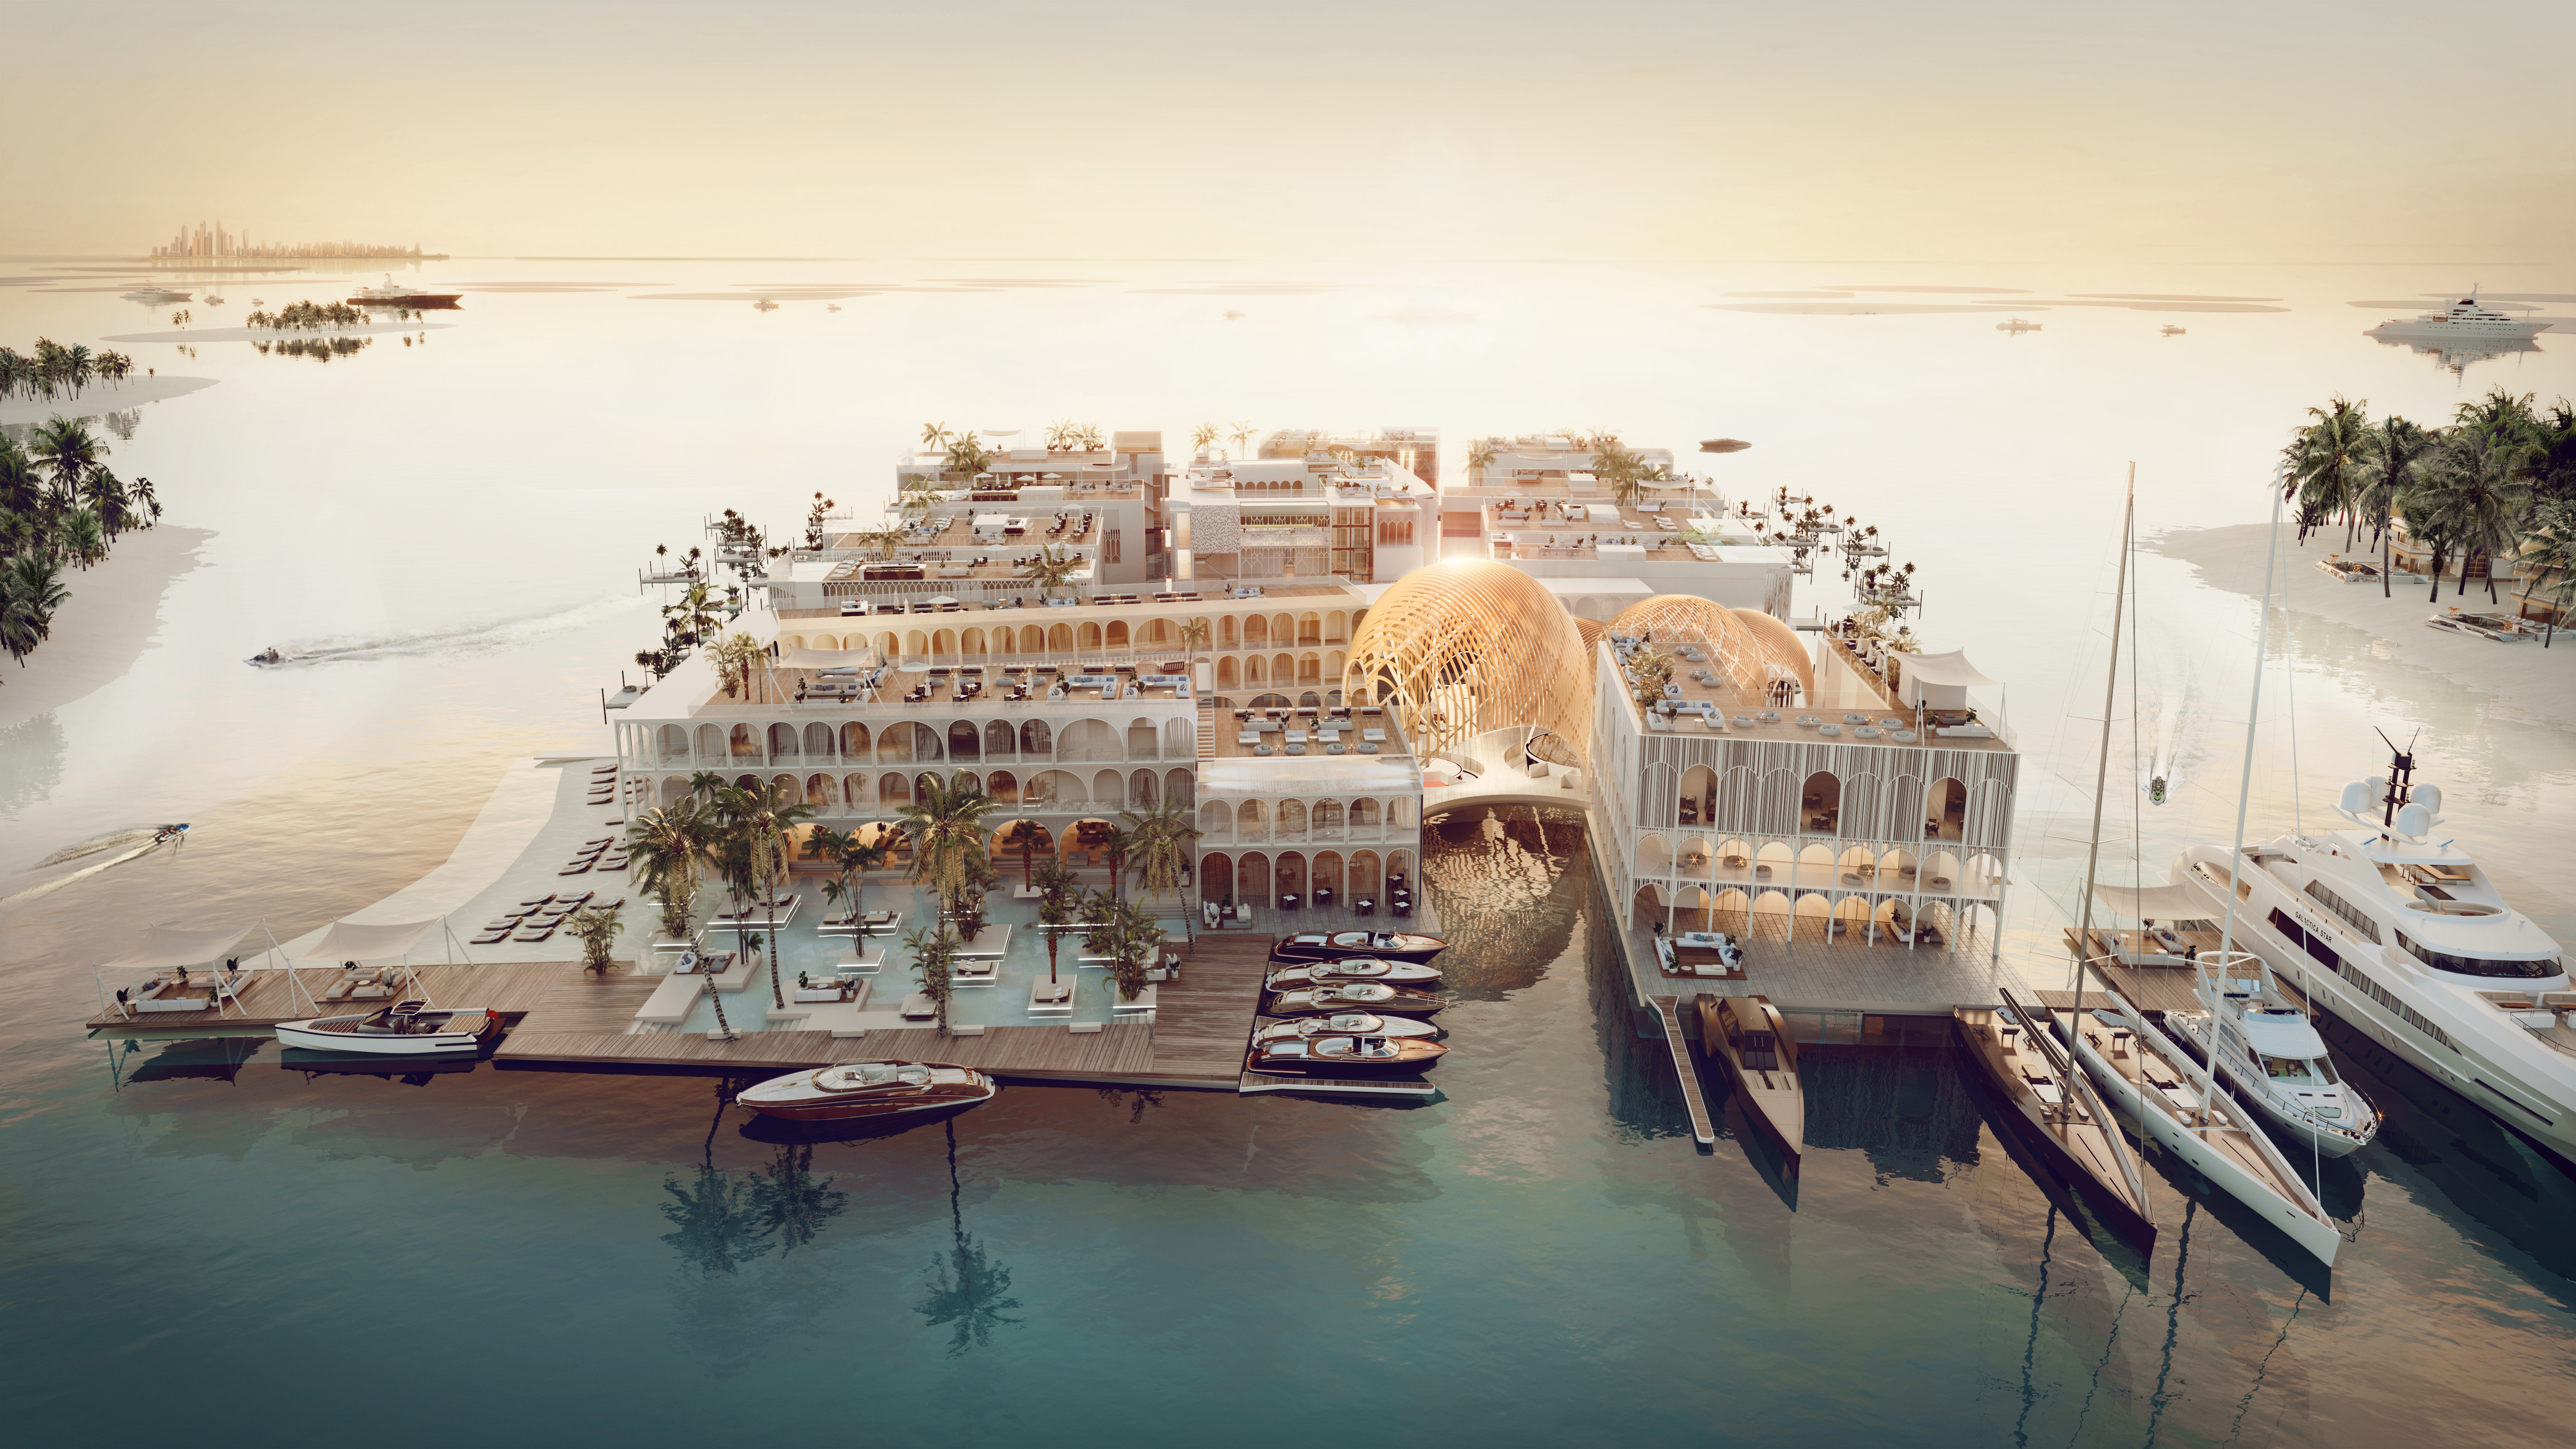 Floating Venice: an Authentic Venetian Experience Brought to the Middle East